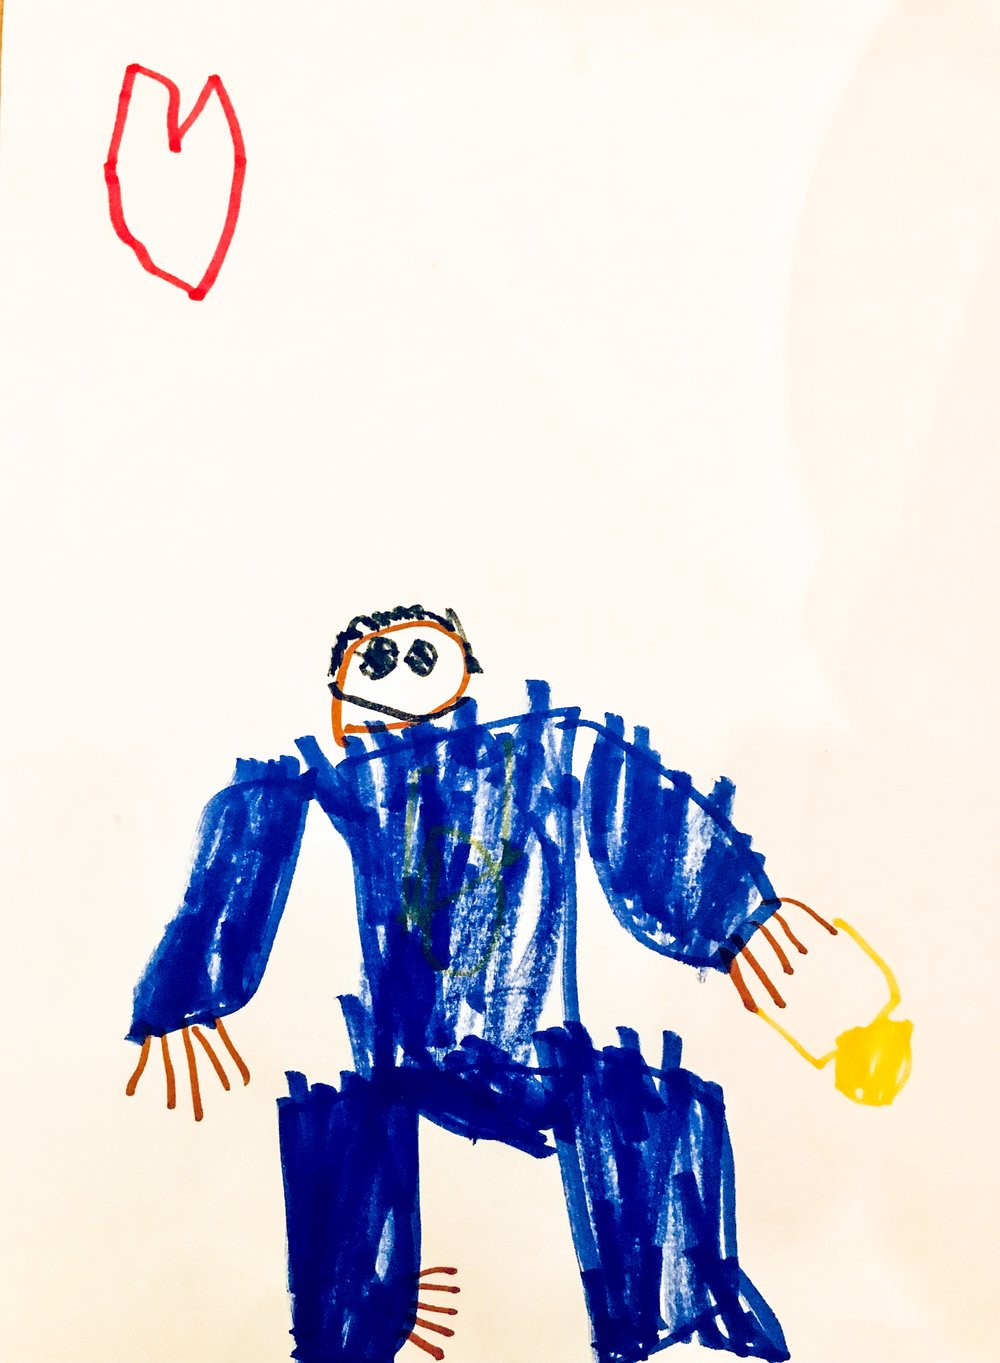 Me  with a gold Medal, courtesy of my son Milo. He drew this before the tournament I kept the drawing as my iPad wallpaper and could see it everyday and make sure I keep my promise if bringing the gold home.